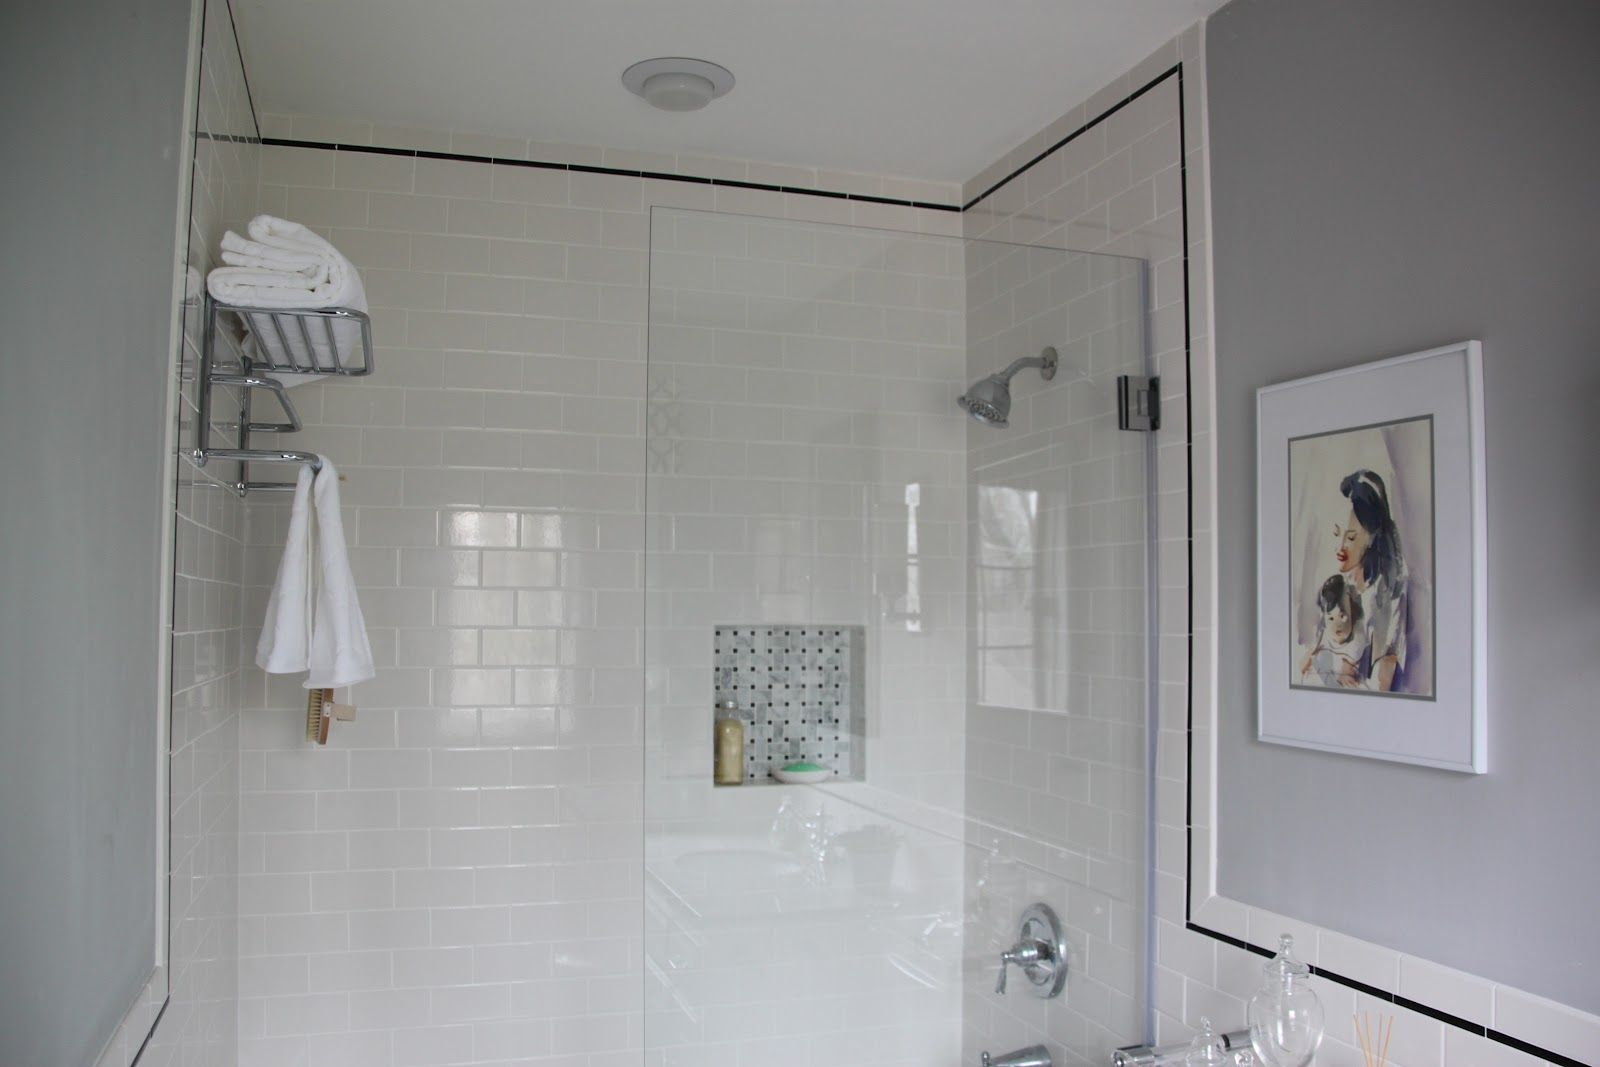 White Subway Tile | We used 3x6 white subway tiles with black pencil ...